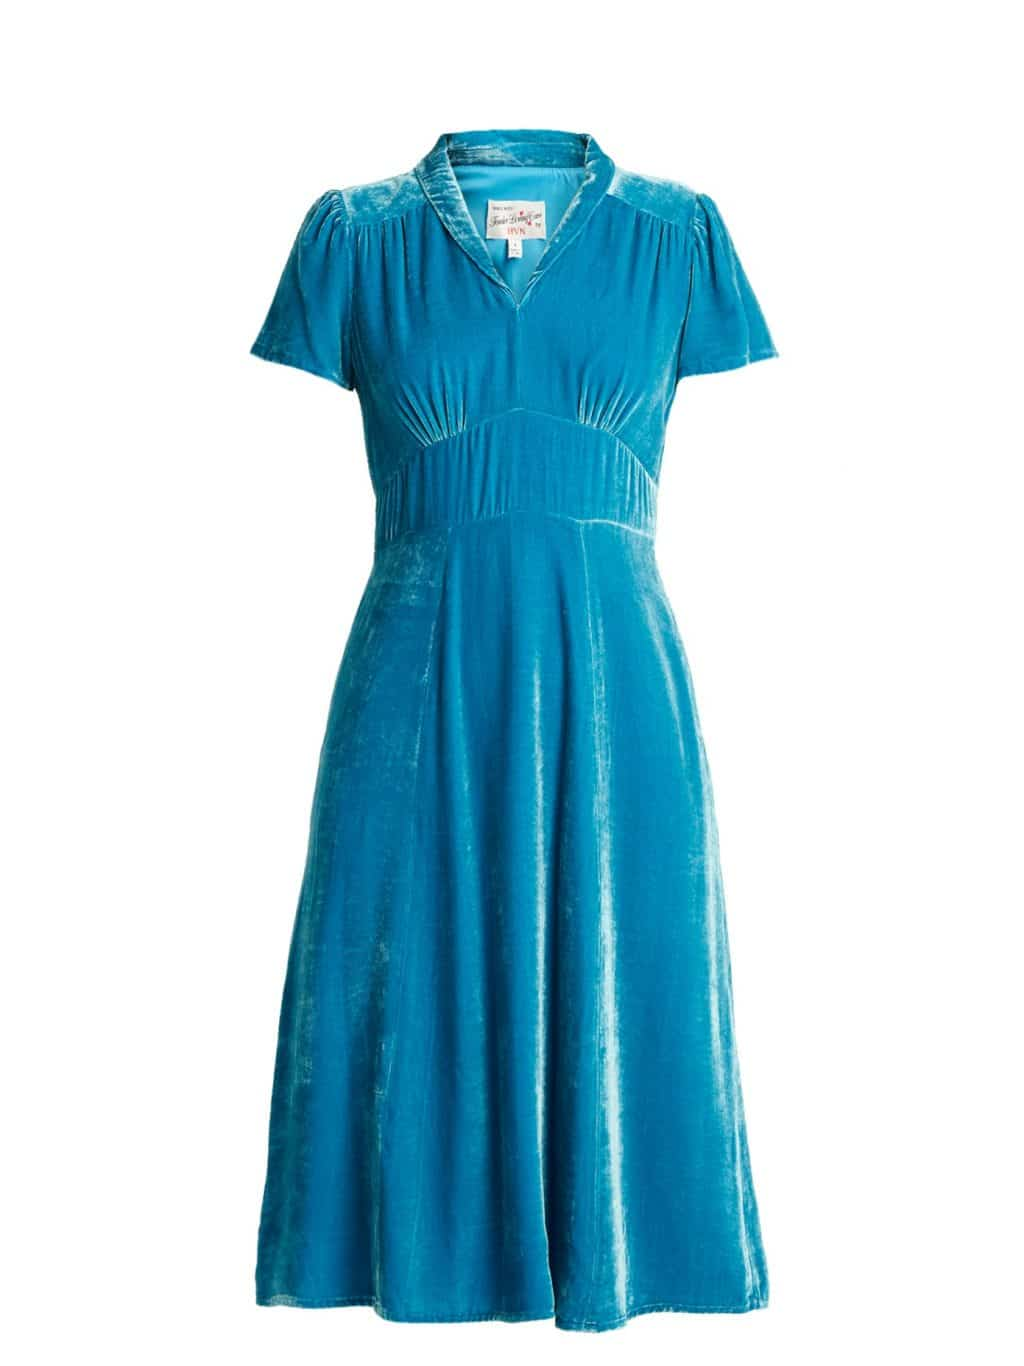 HVN Morgan Short-sleeved Velvet Lagoon-Blue Dress